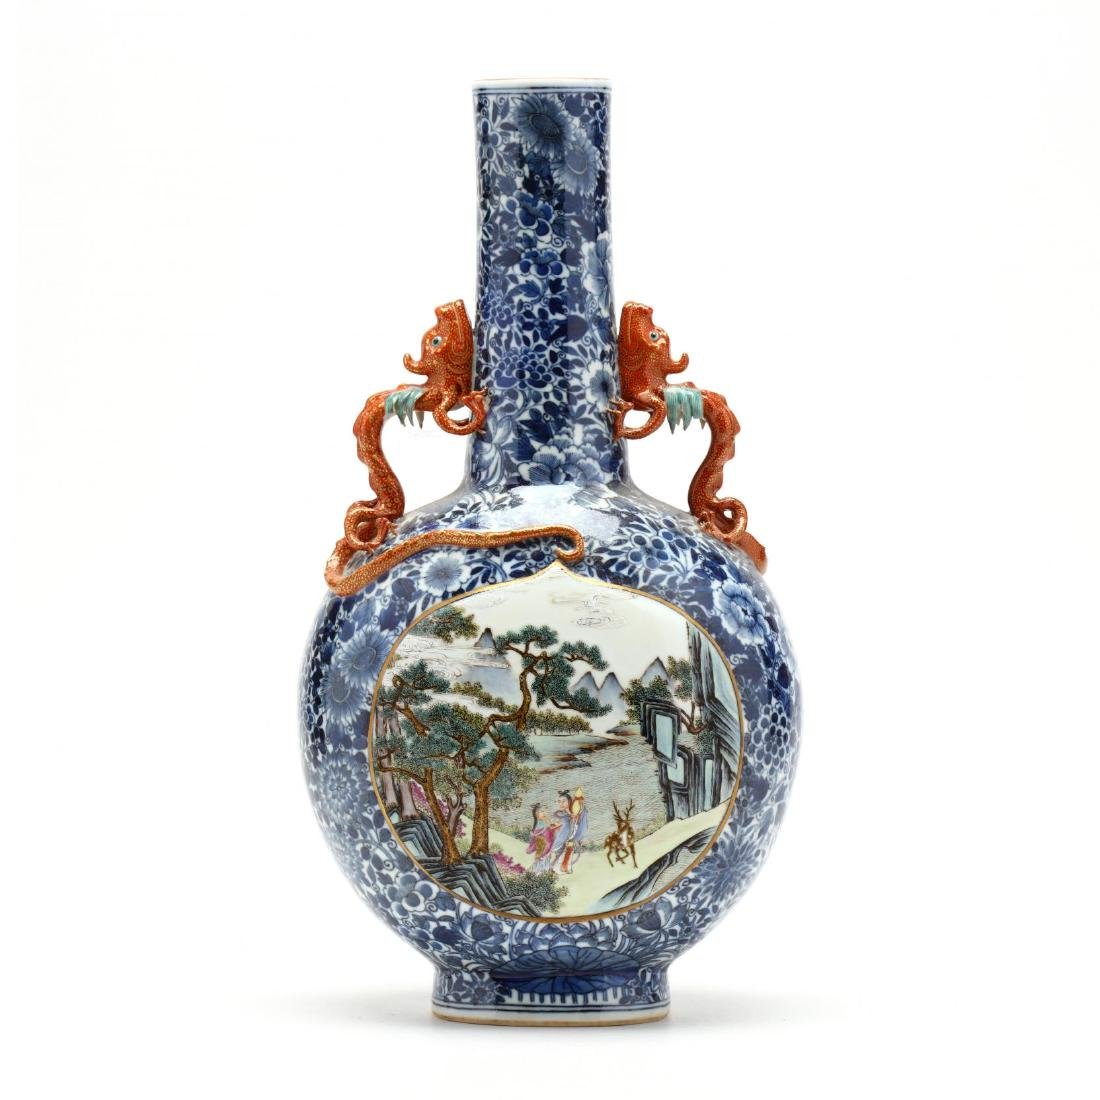 A Chinese Moon Flask Vase